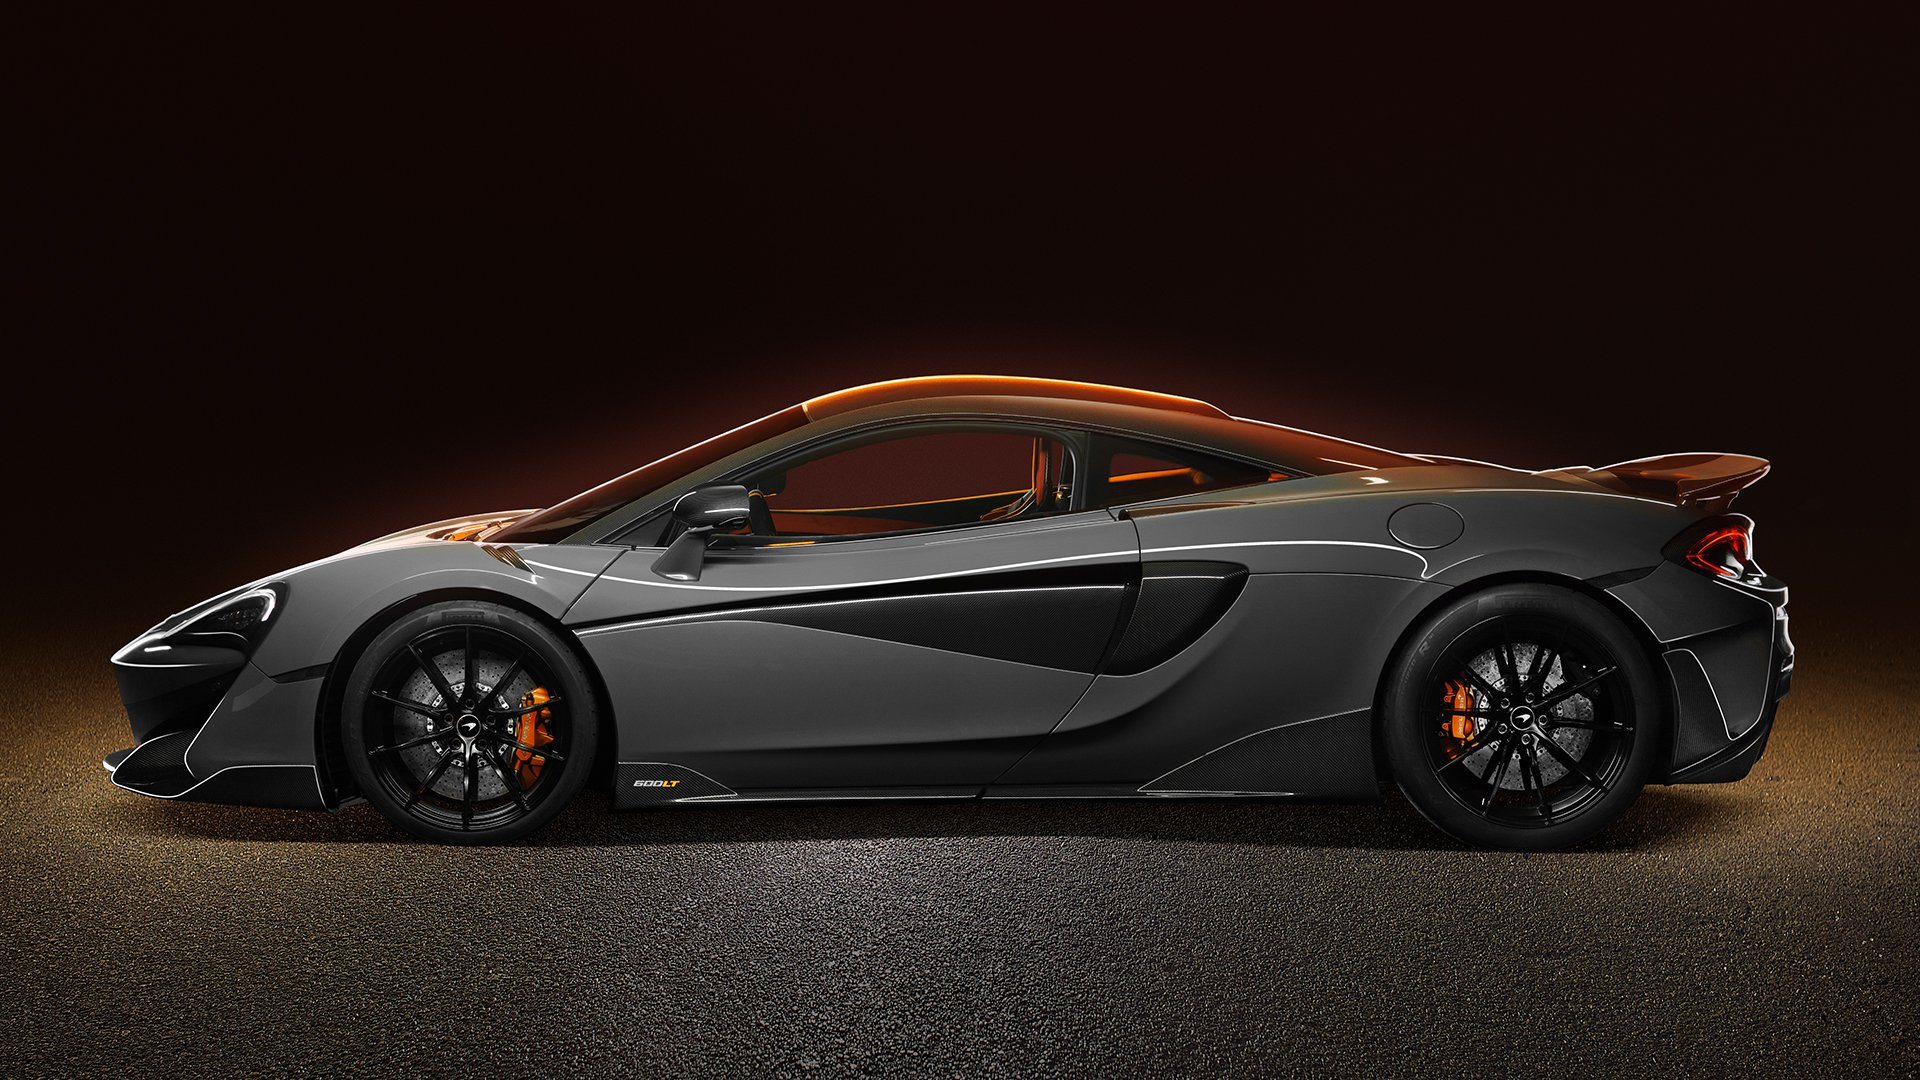 Supercarsnets Comprehensive Guide To The 2019 Mclaren 600lt